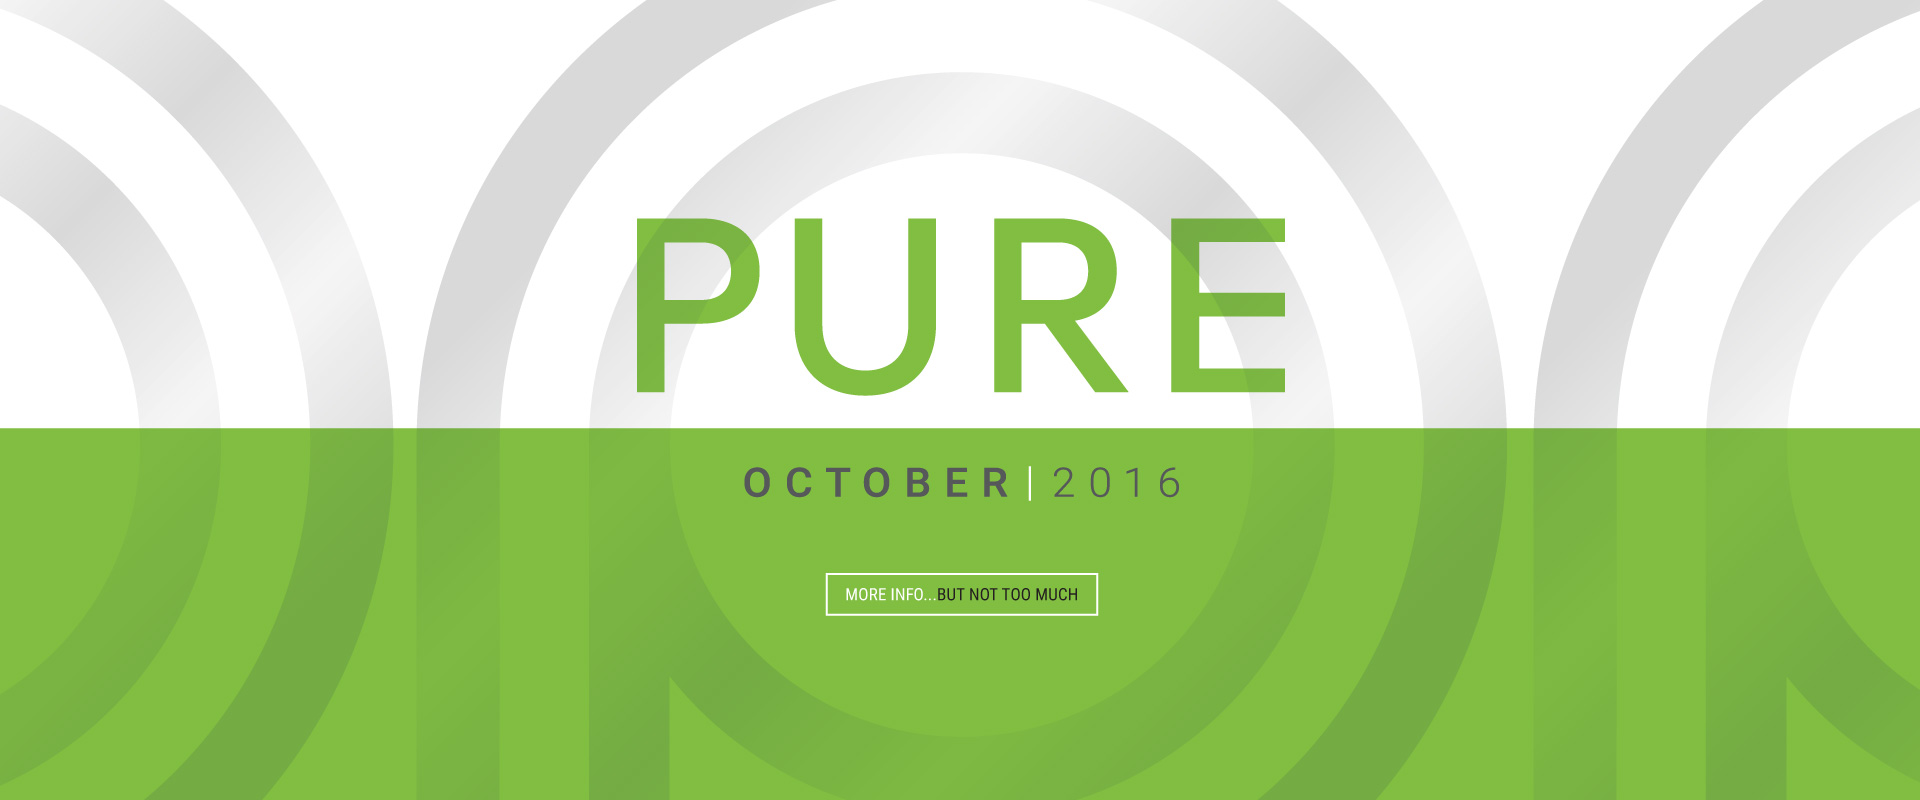 PURE - Coming October 2016